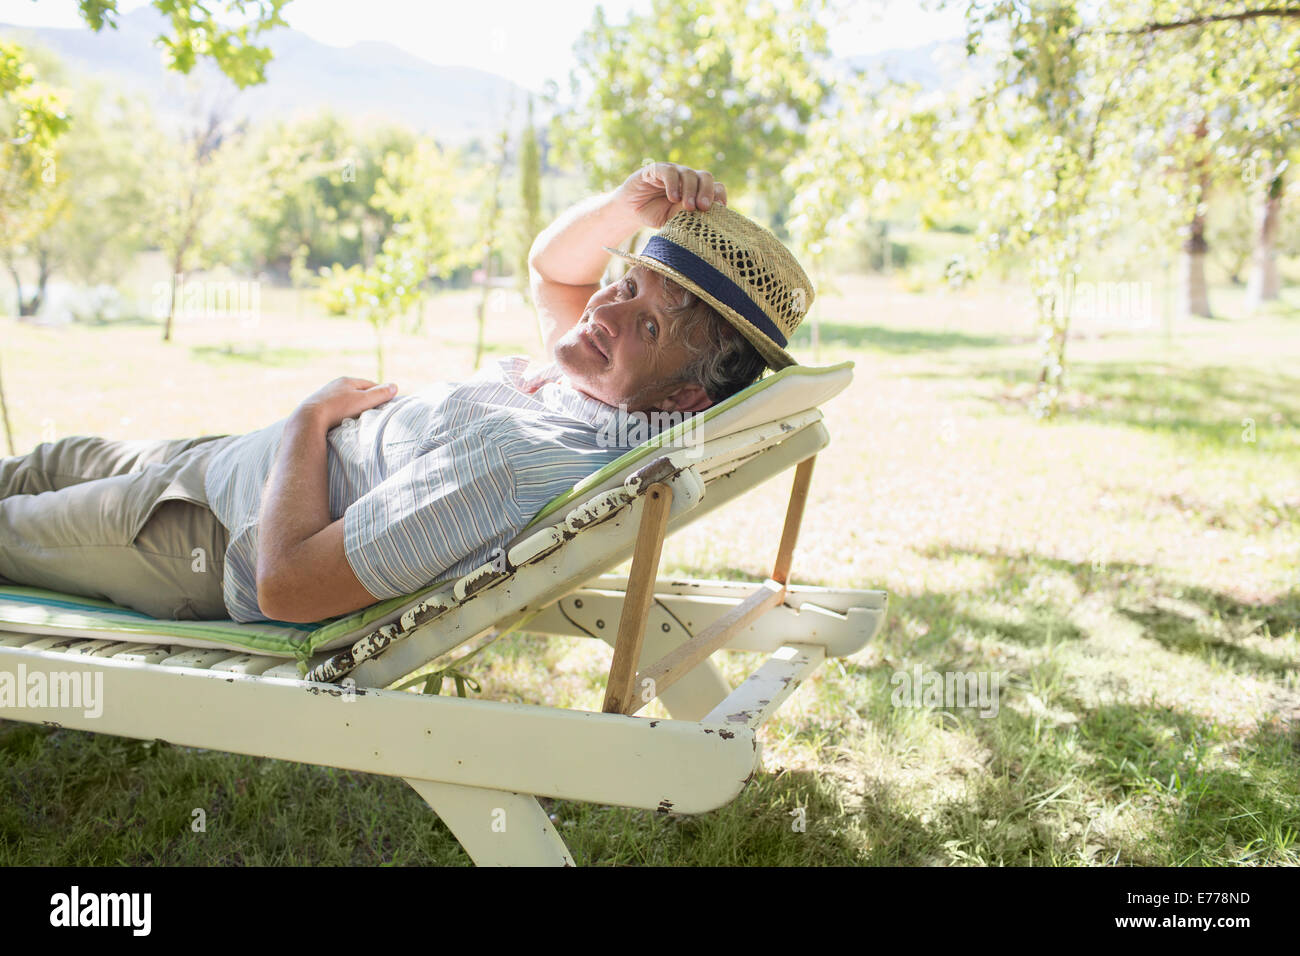 Older man relaxing on lawn chair outdoors Stock Photo